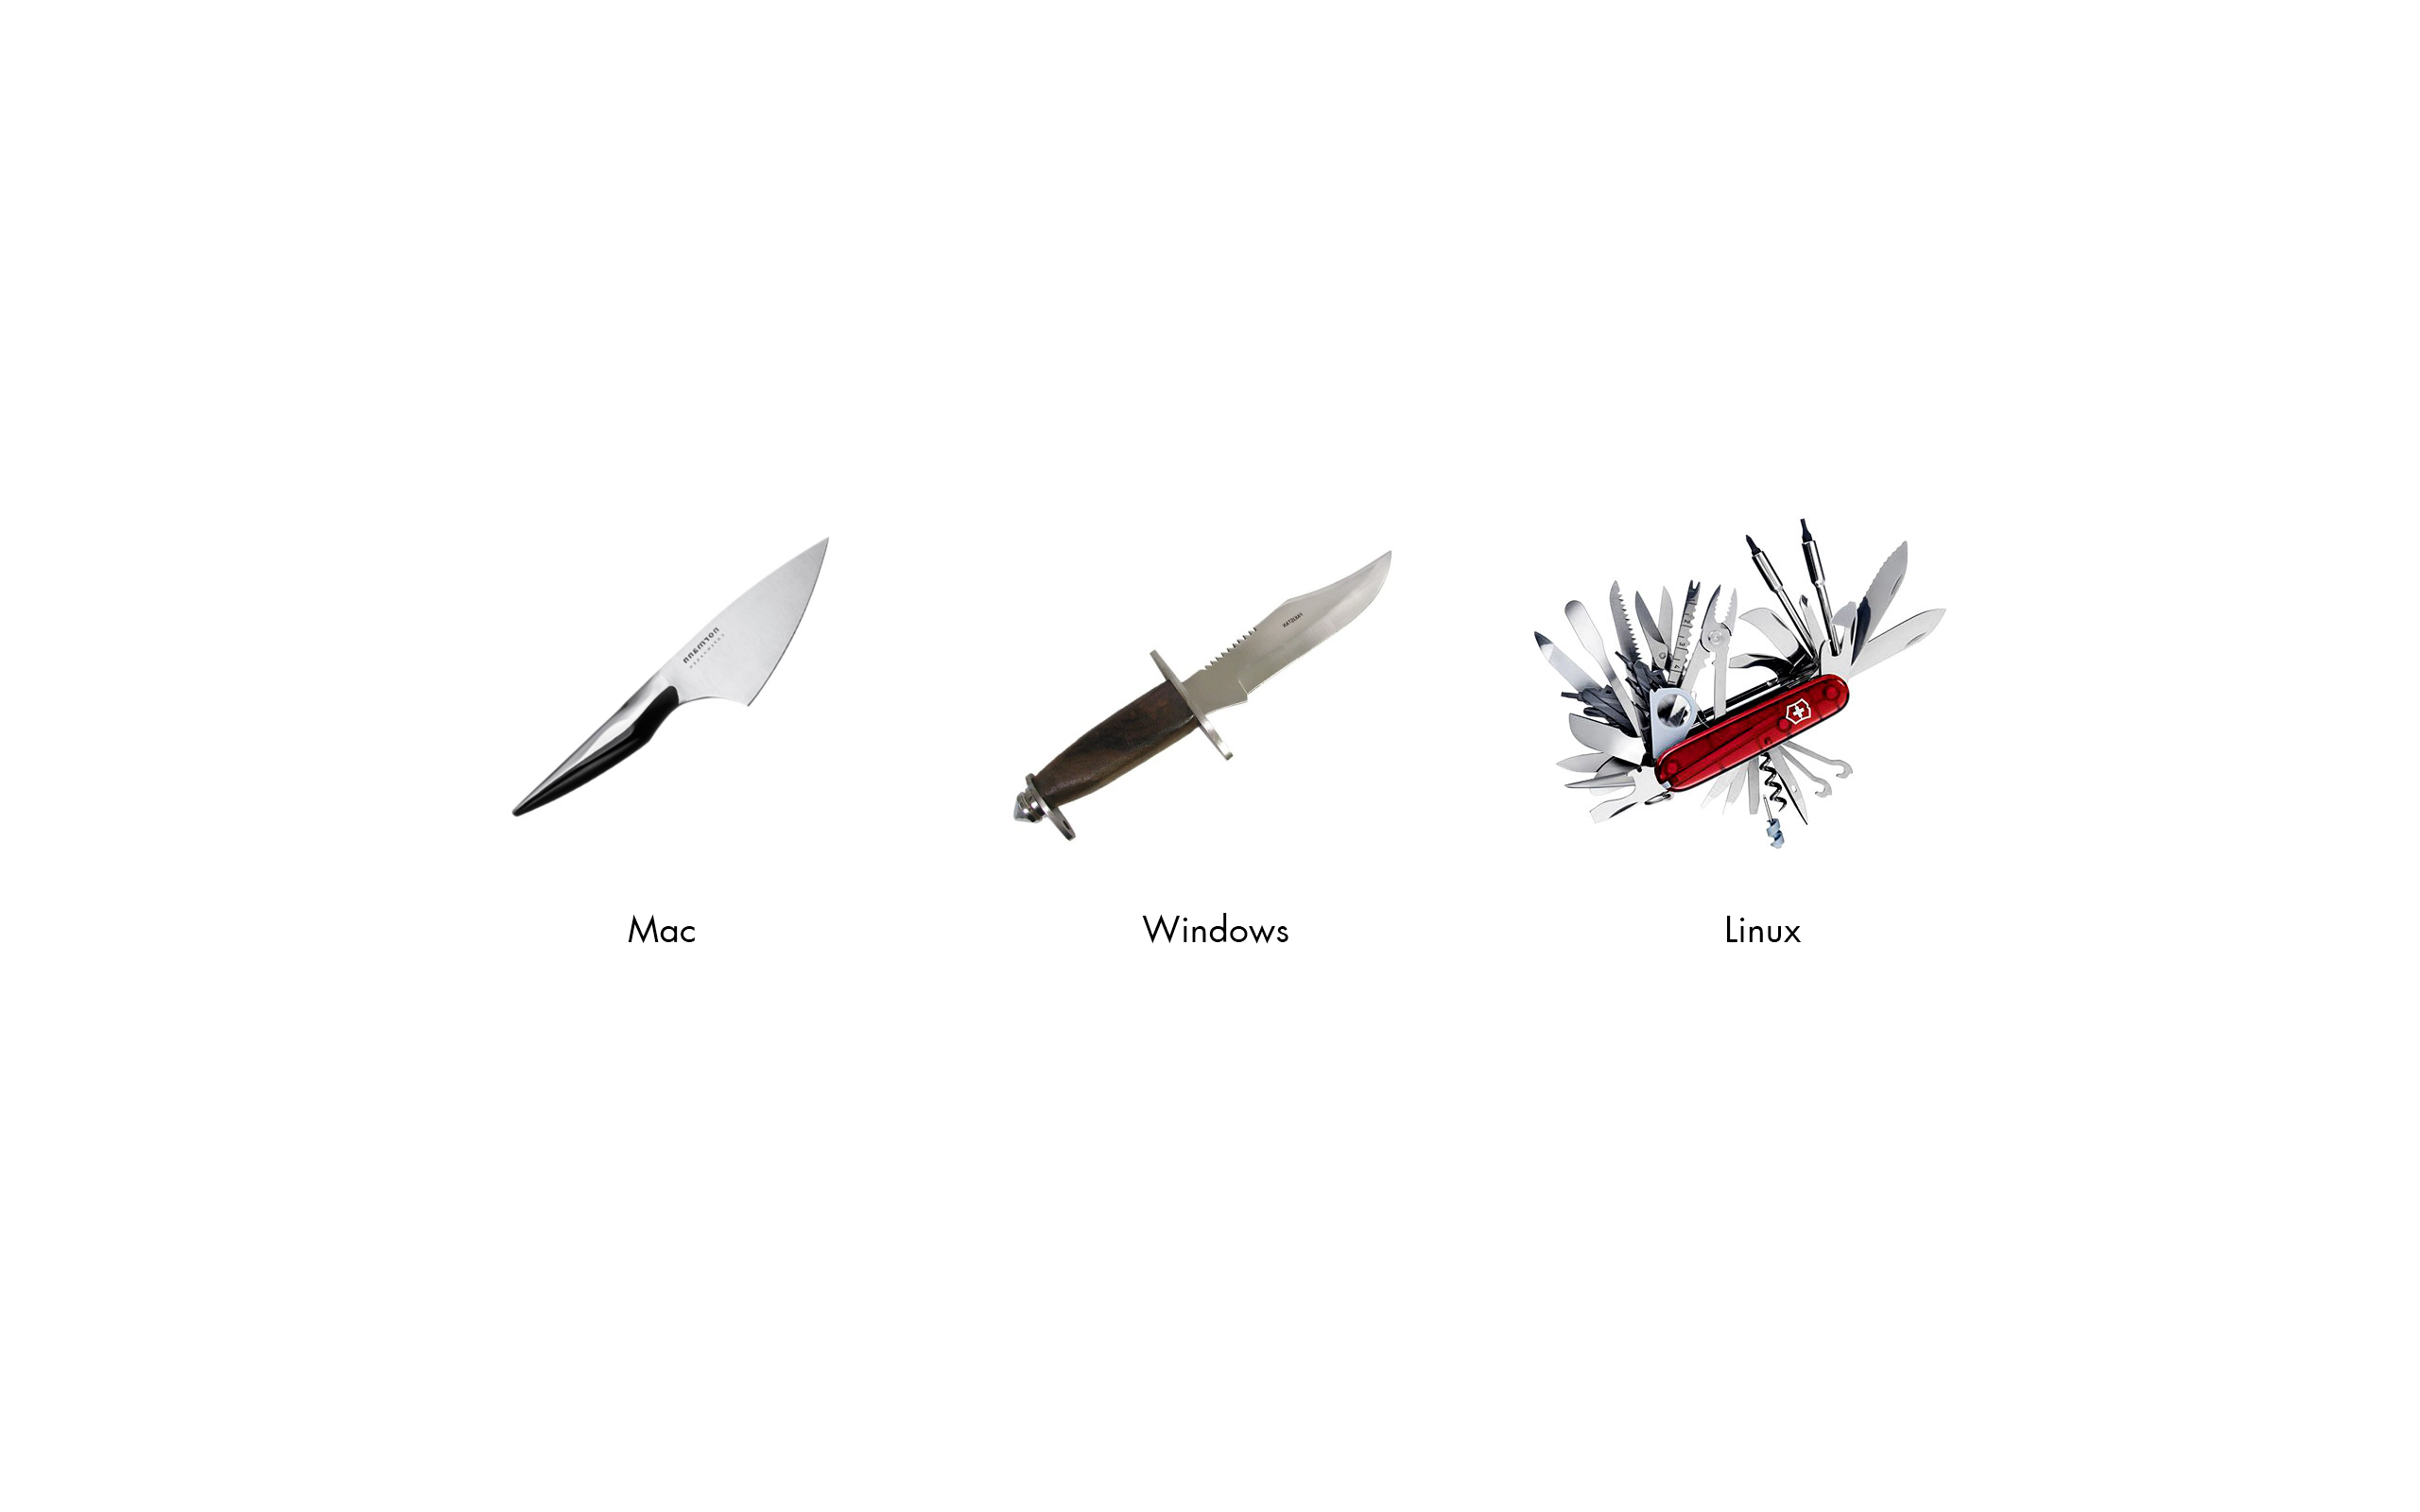 Computers as knives